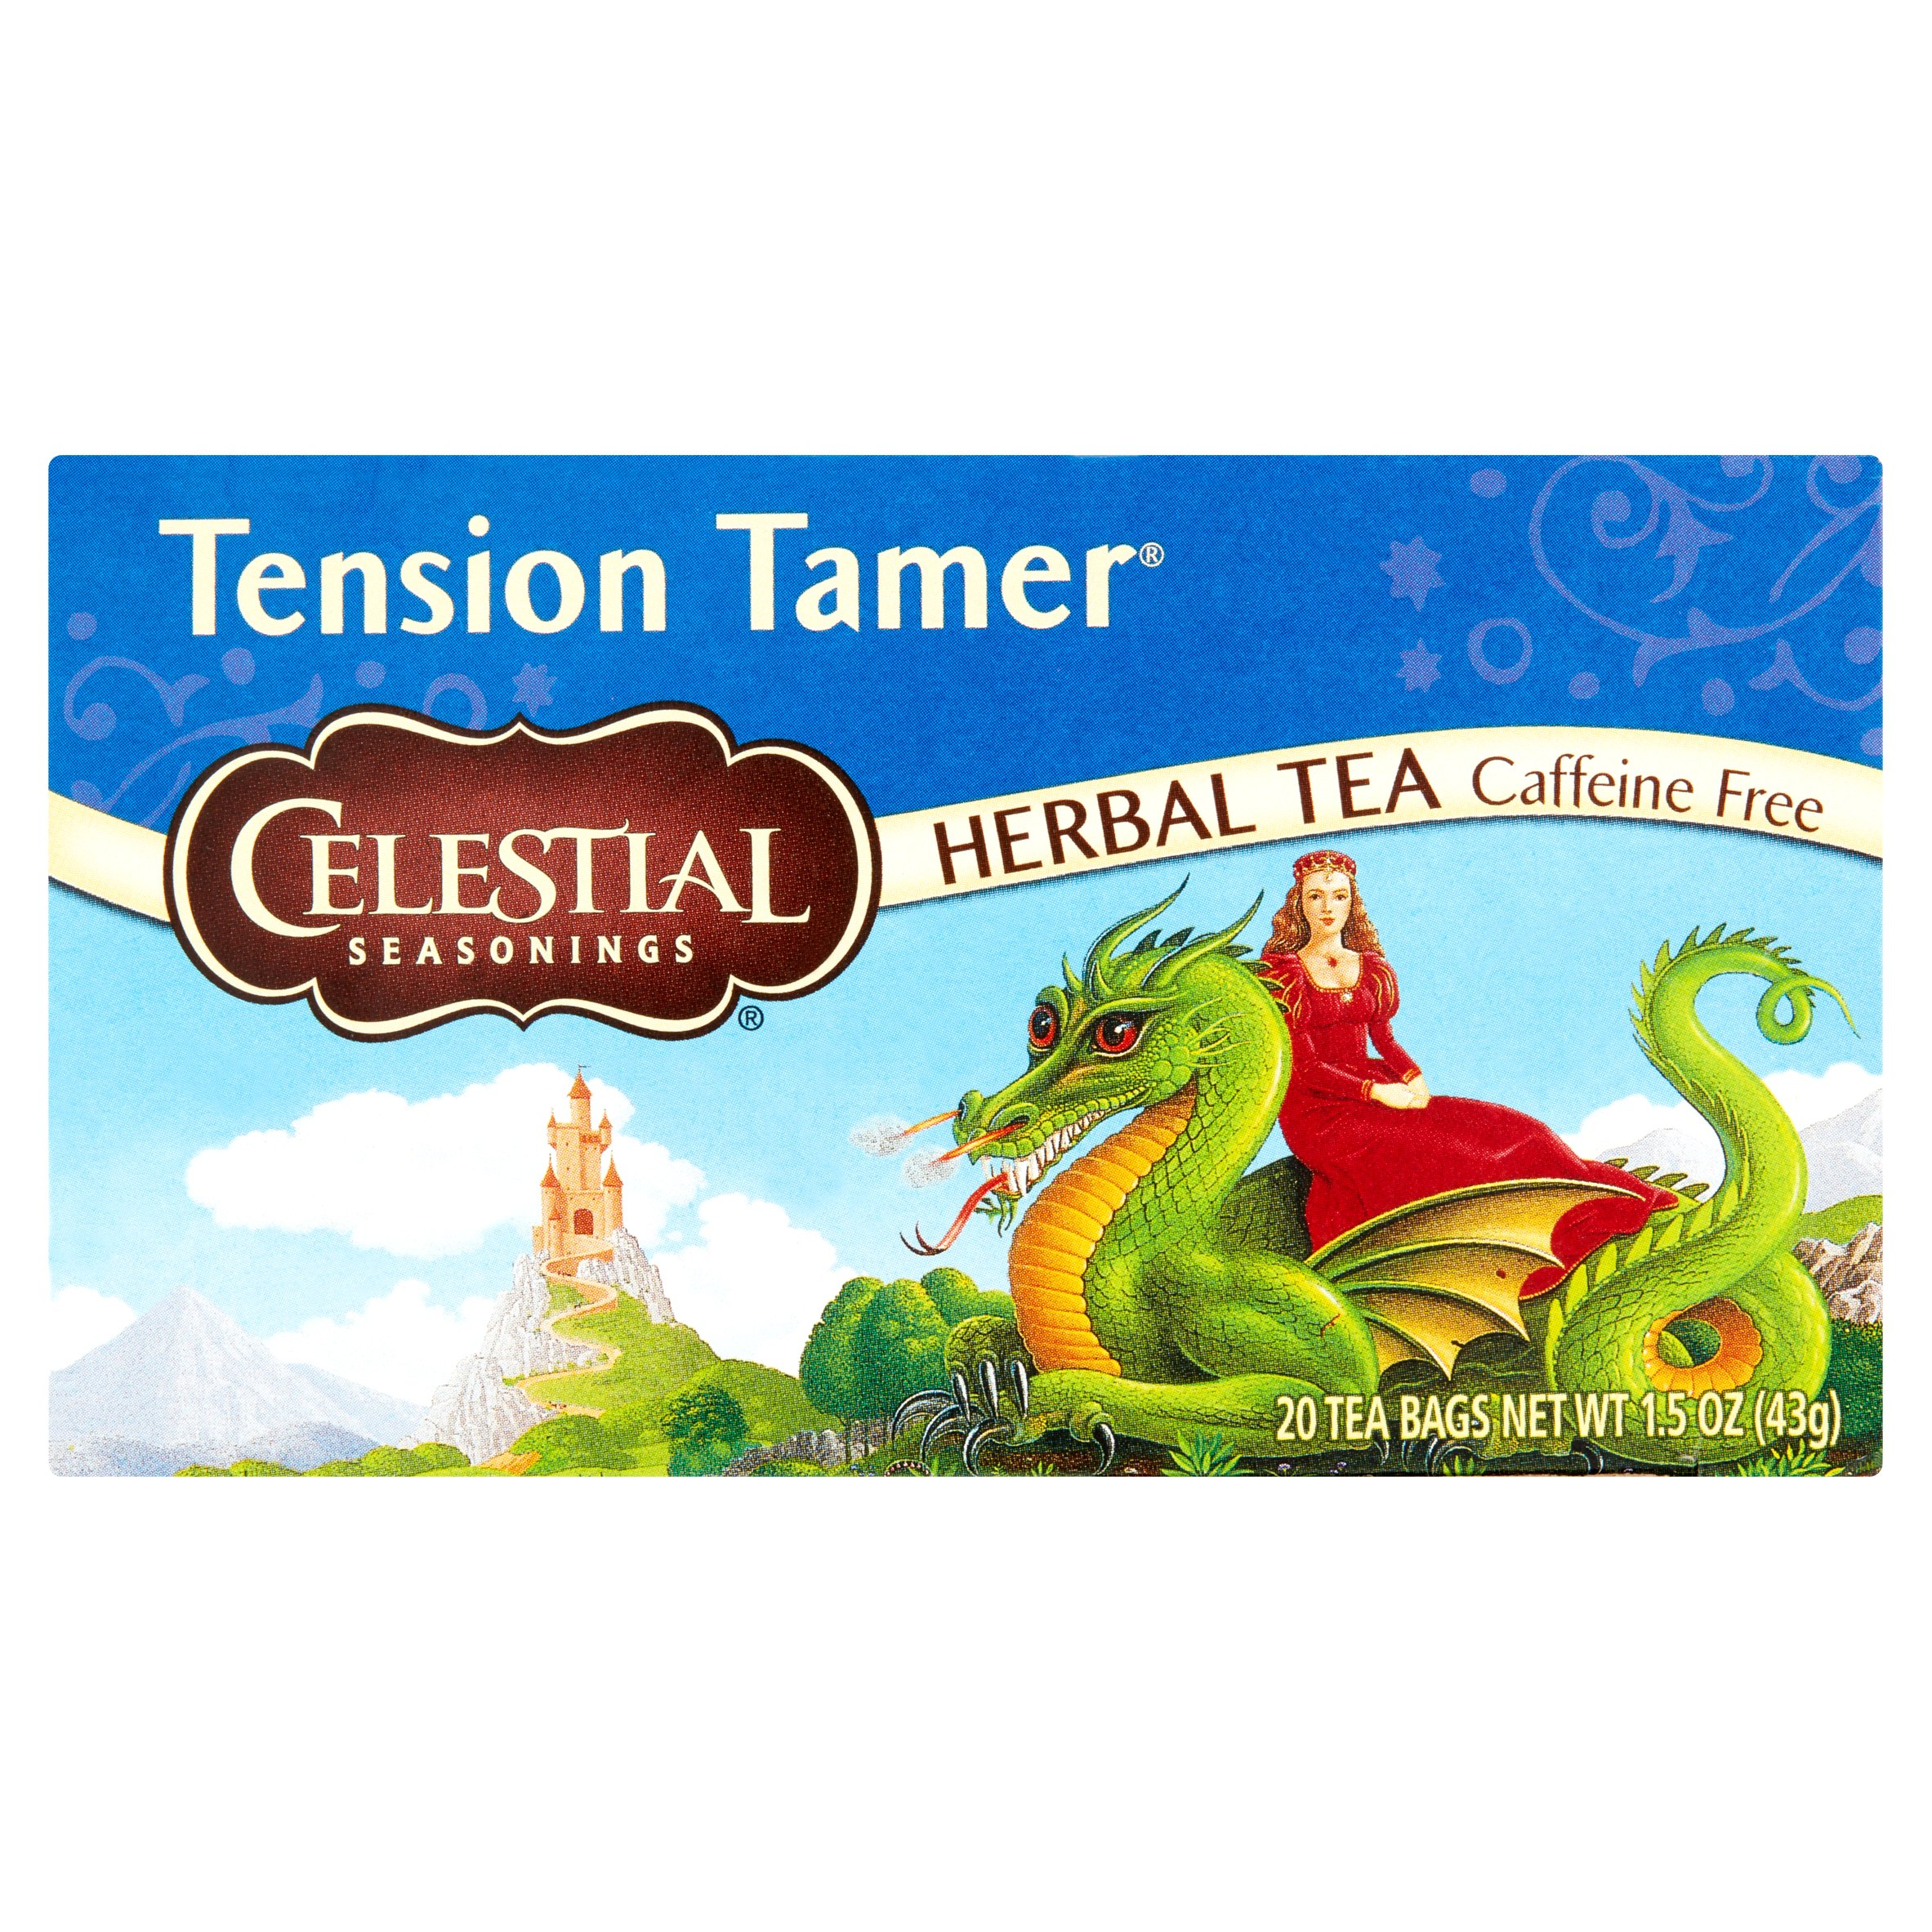 Celestial Seasonings: Caffeine Free Herbal Tea, 20 Ct